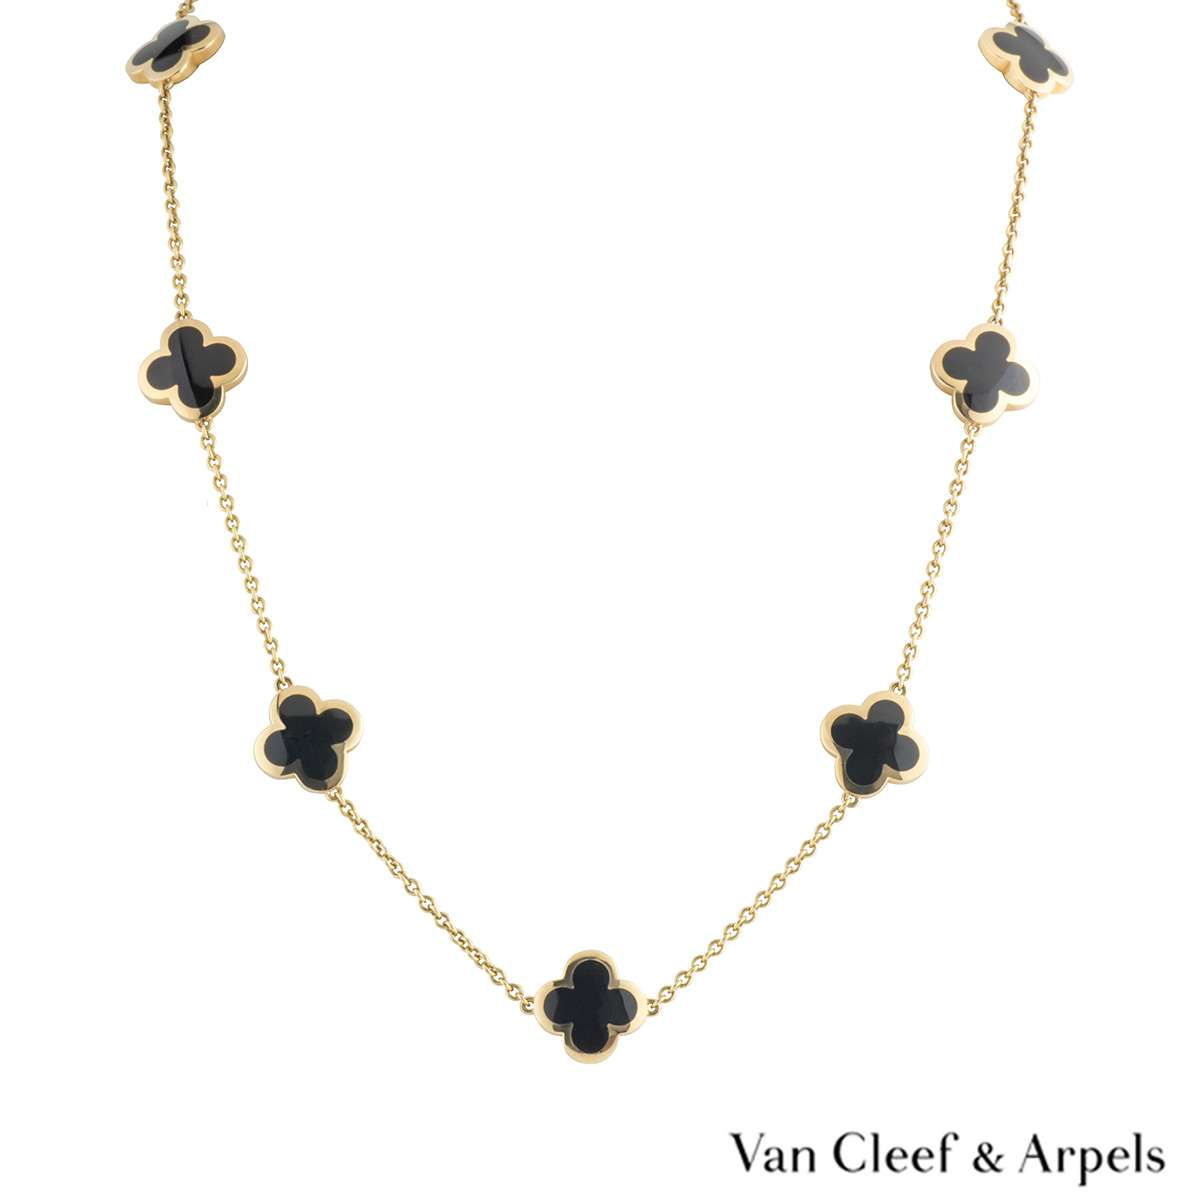 Van cleef arpels yellow gold and onyx pure alhambra necklace van cleef arpels yellow gold and onyx pure alhambra necklace aloadofball Choice Image